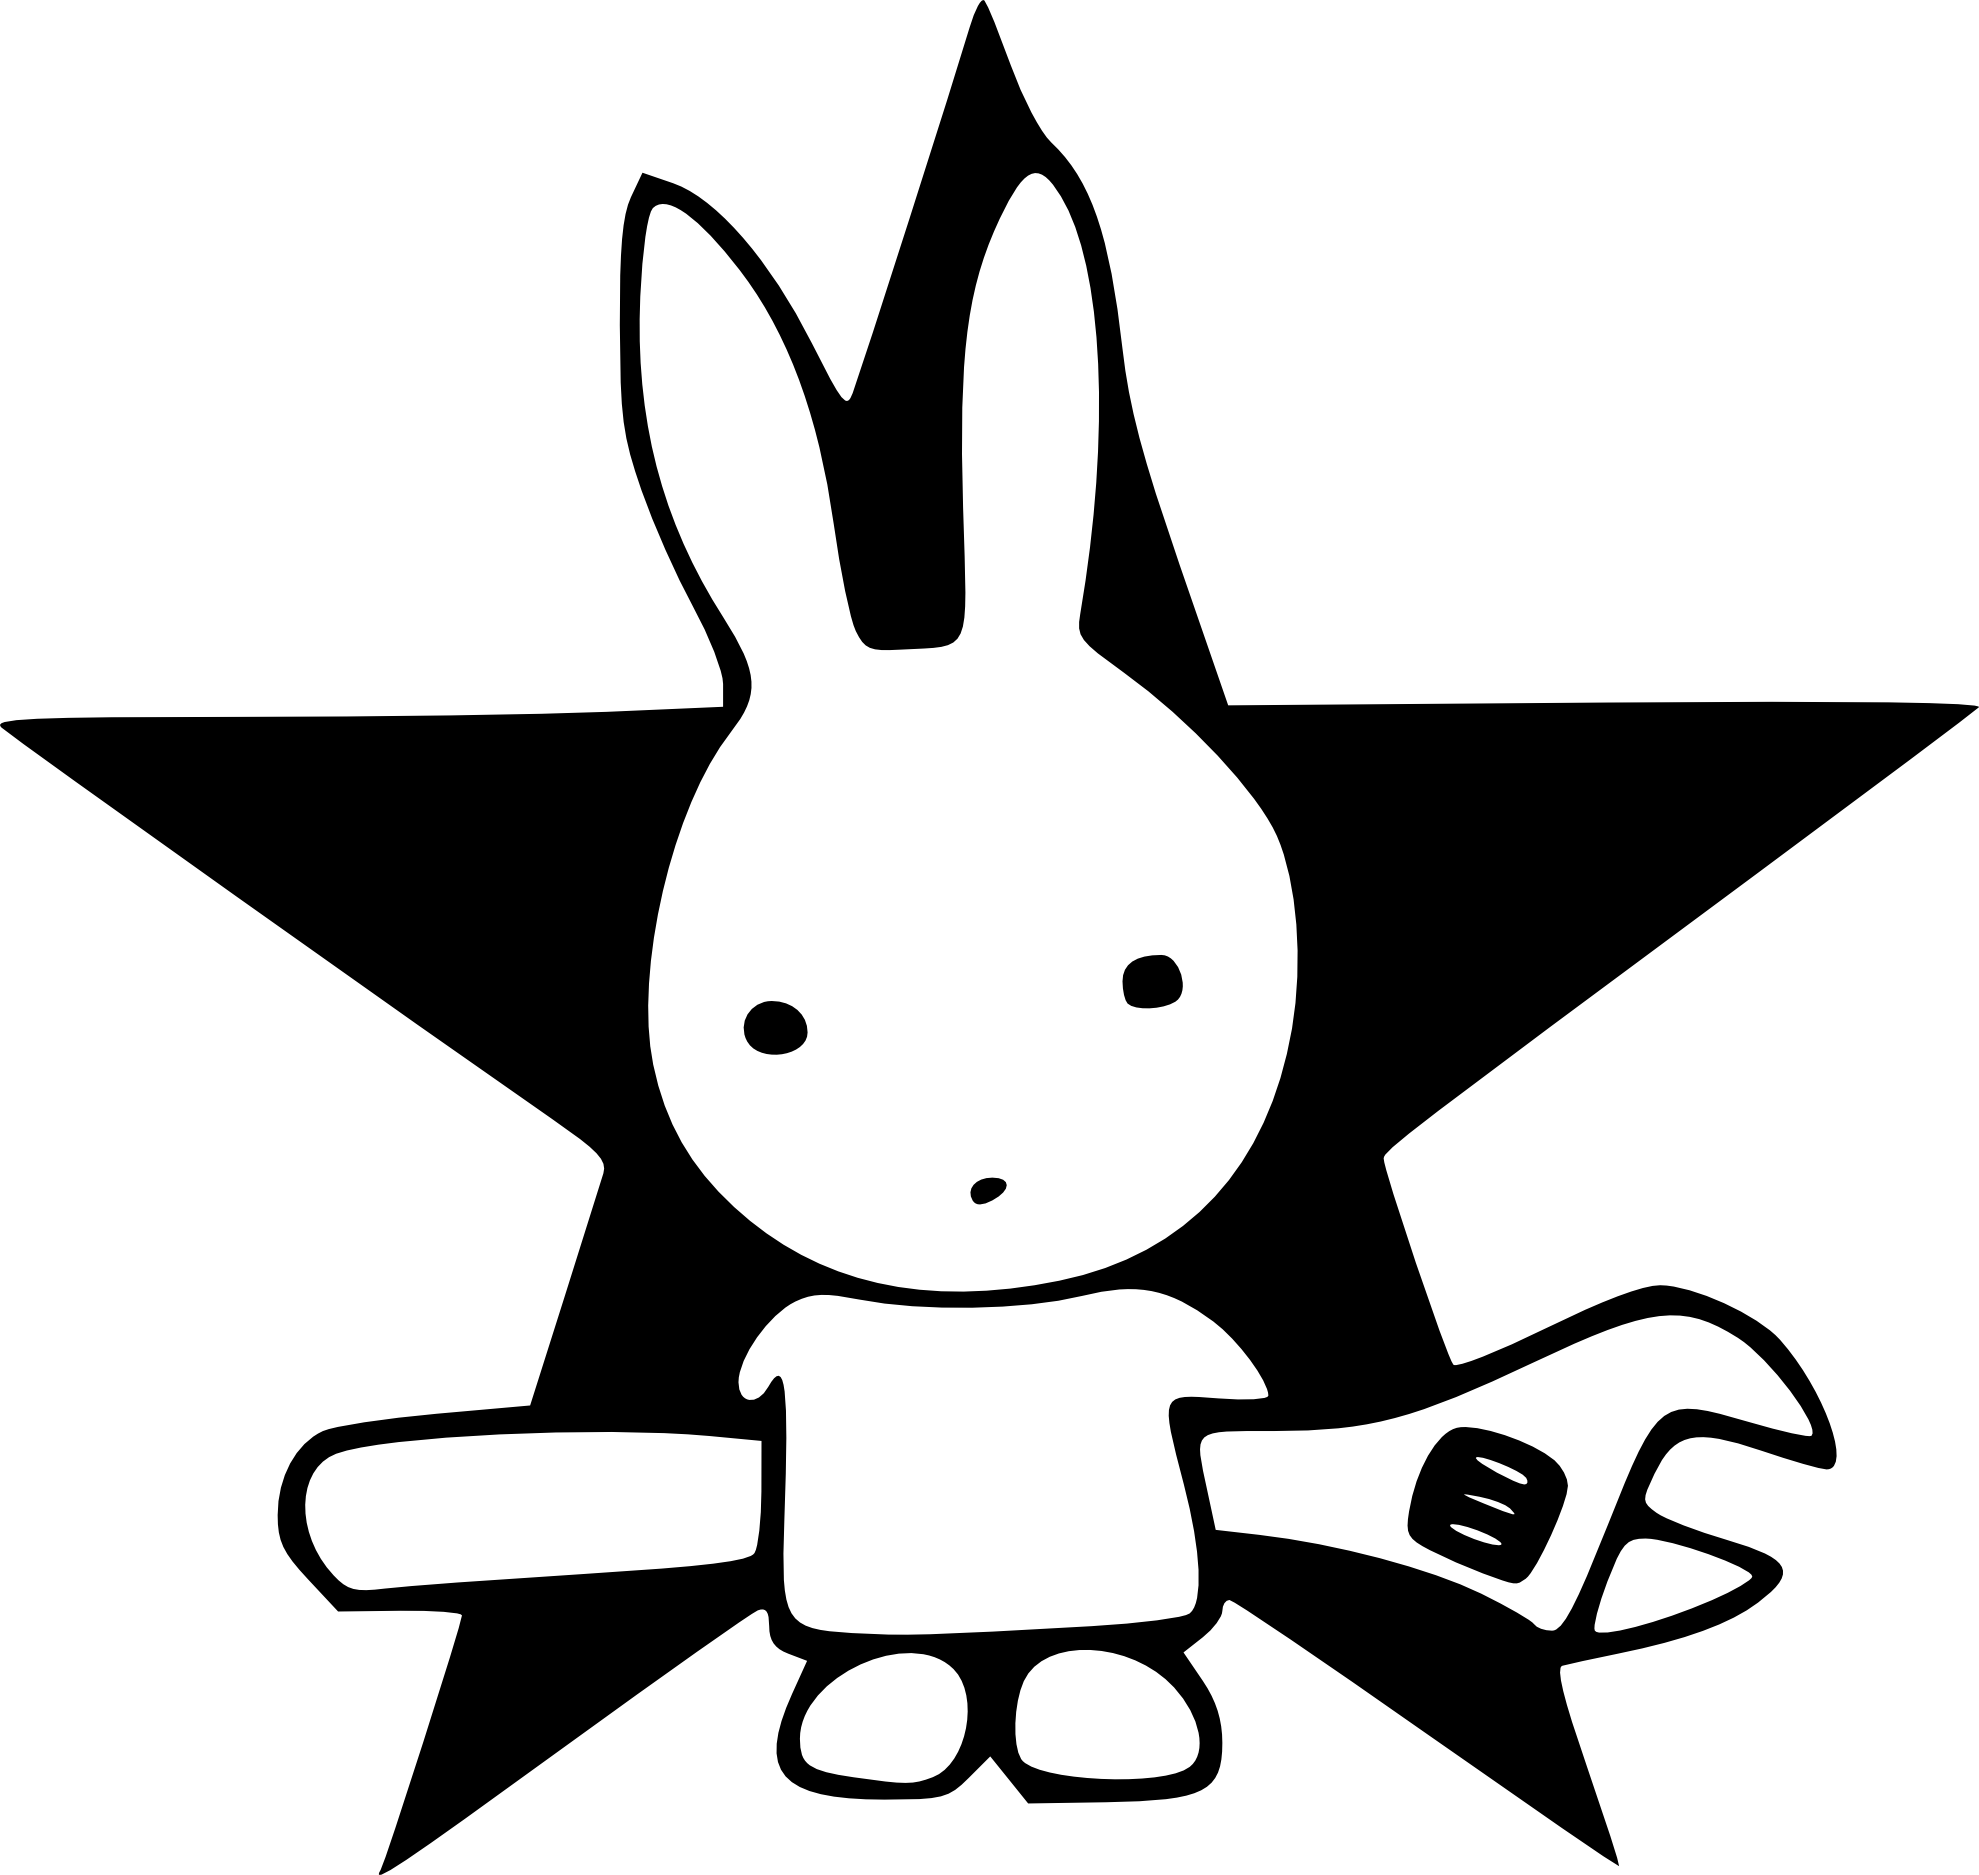 Action rabbit panda free. Clipart bunny black and white